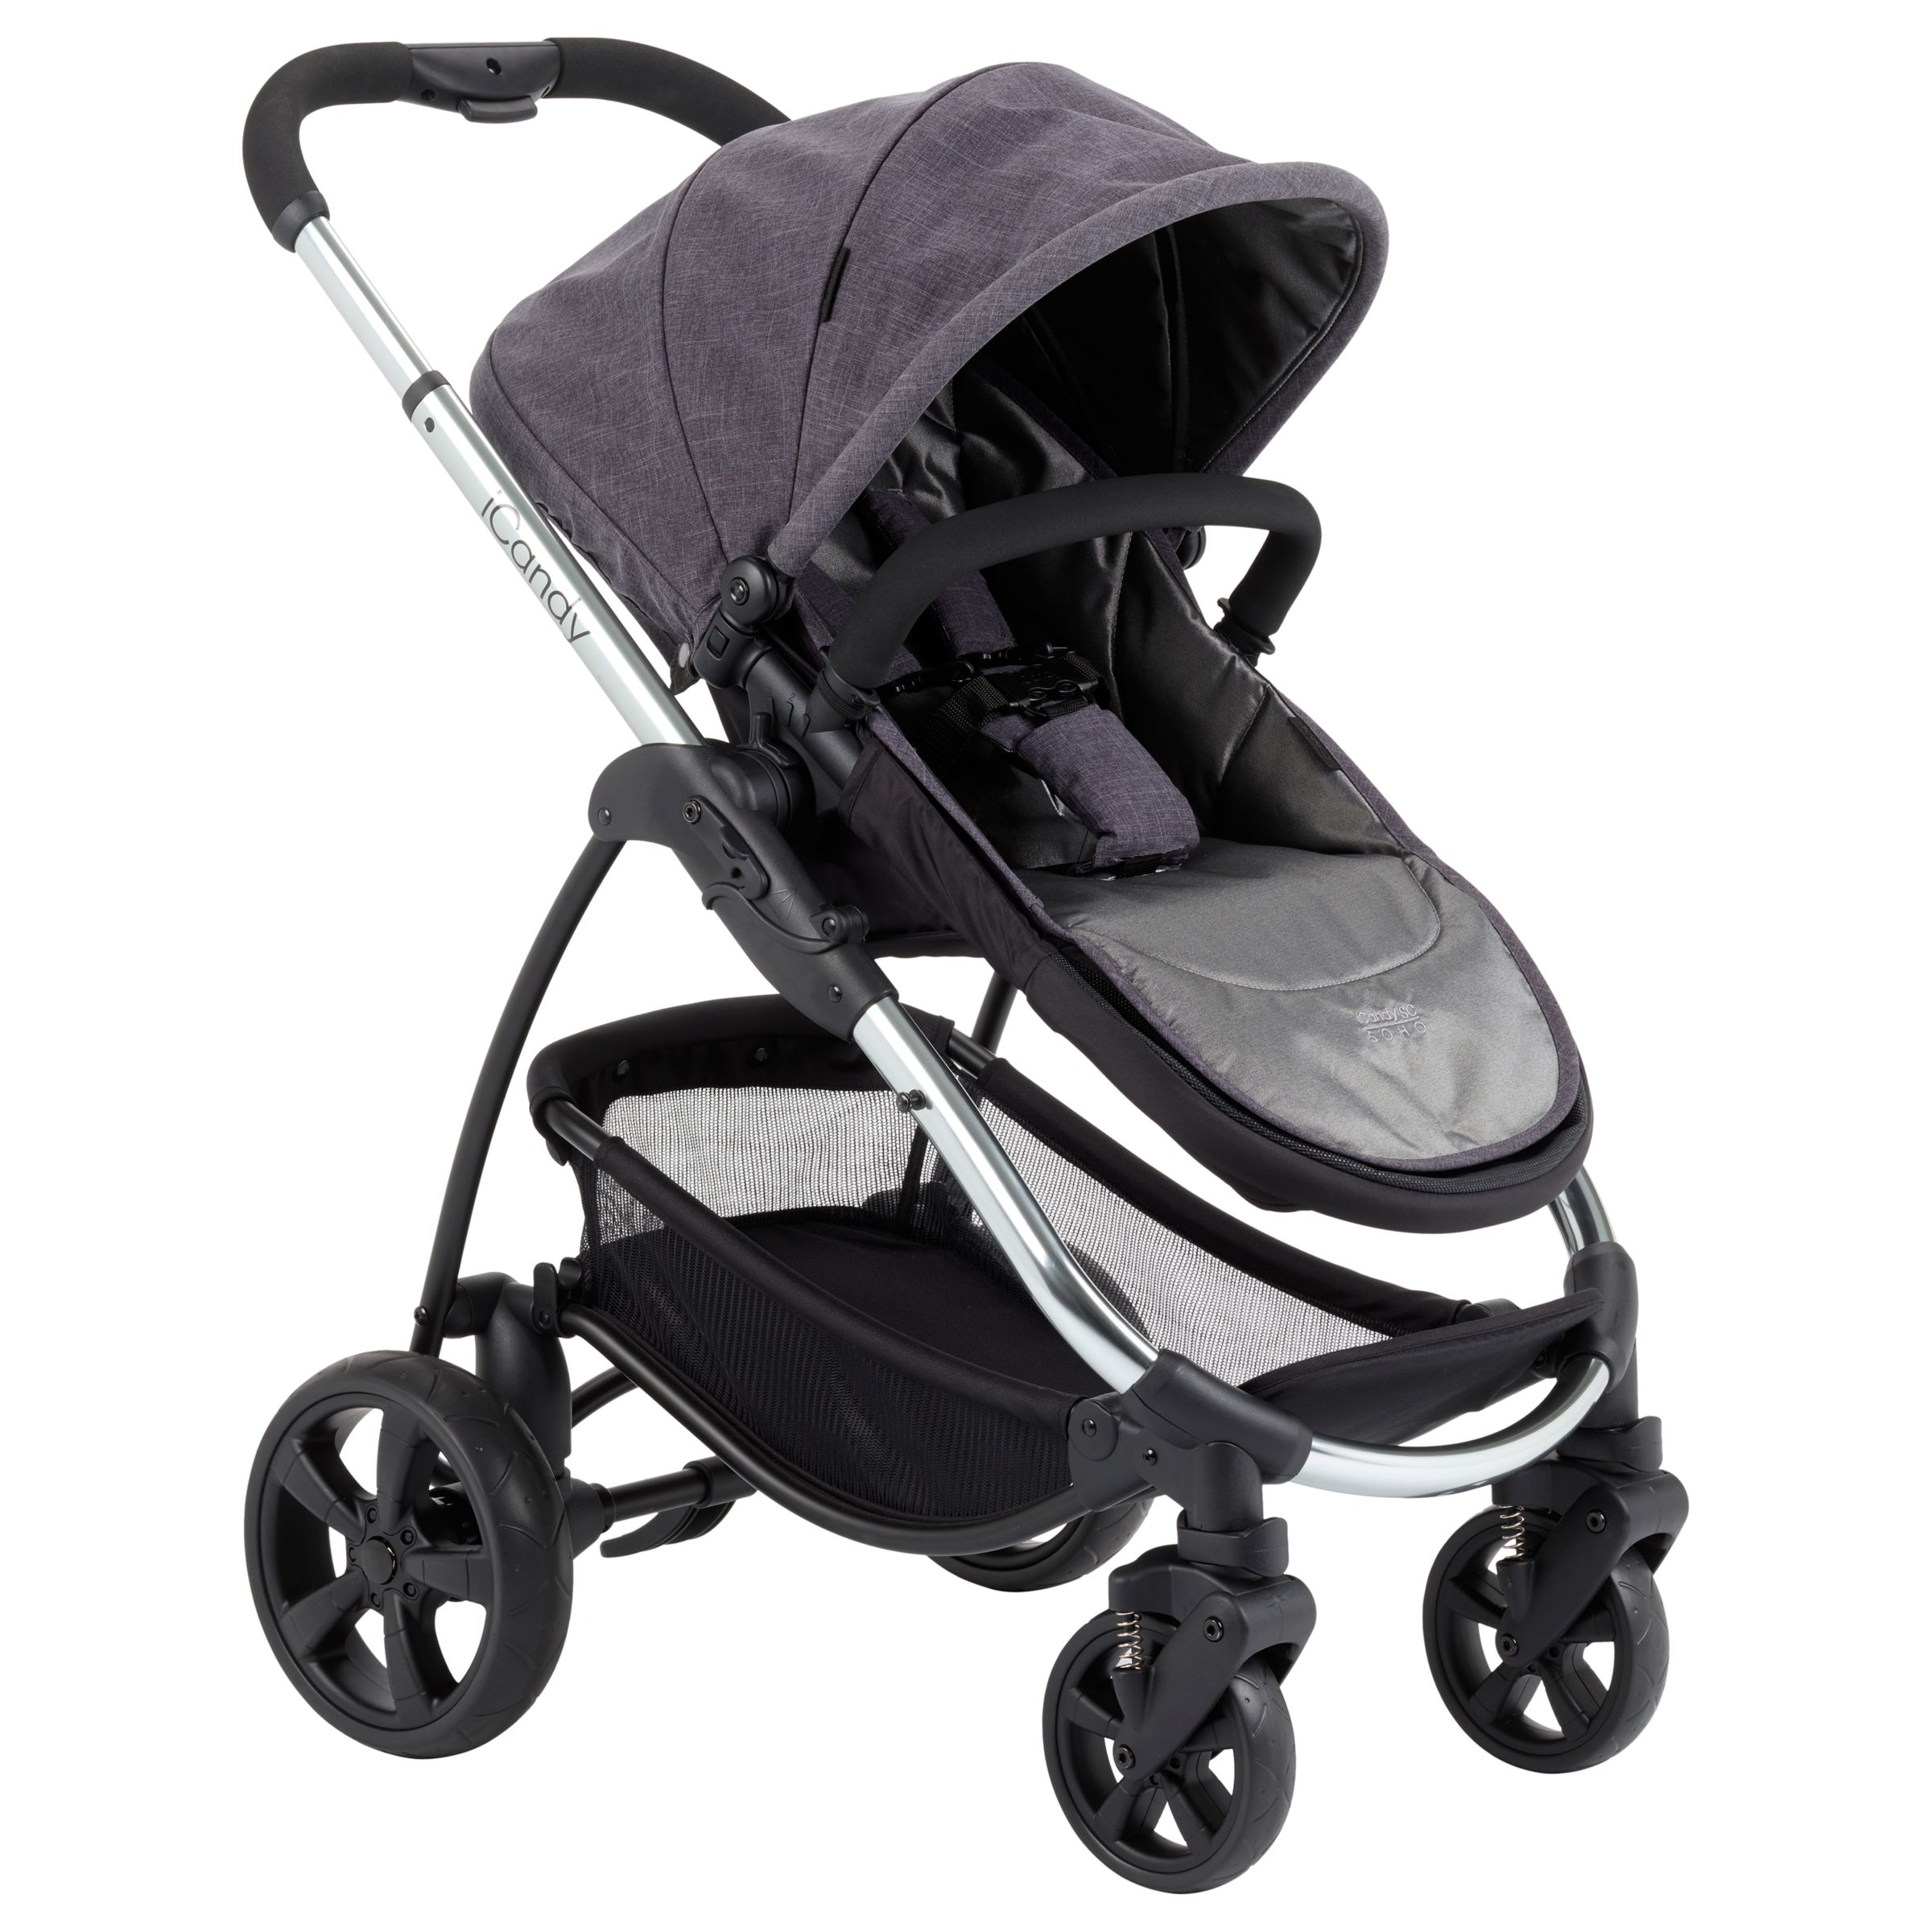 iCandy iCandy Strawberry Style Pushchair with Chrome Chassis & Carrycot, Soho